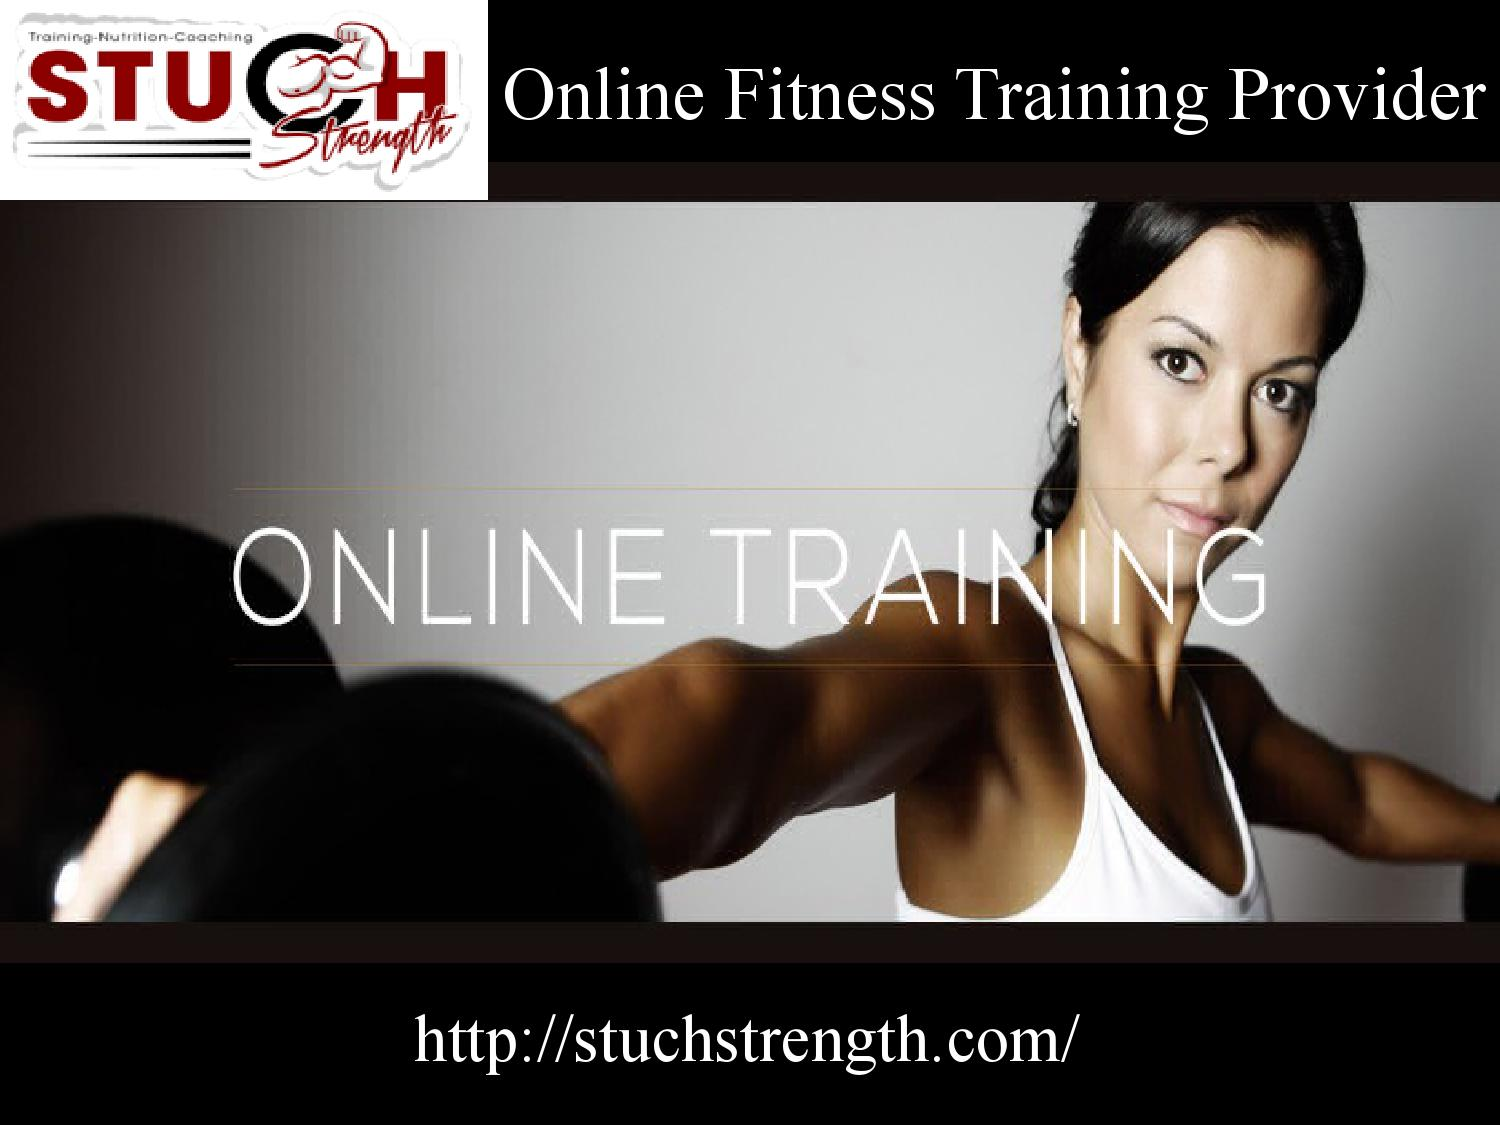 Online fitness training provider by stuchstrength - issuu